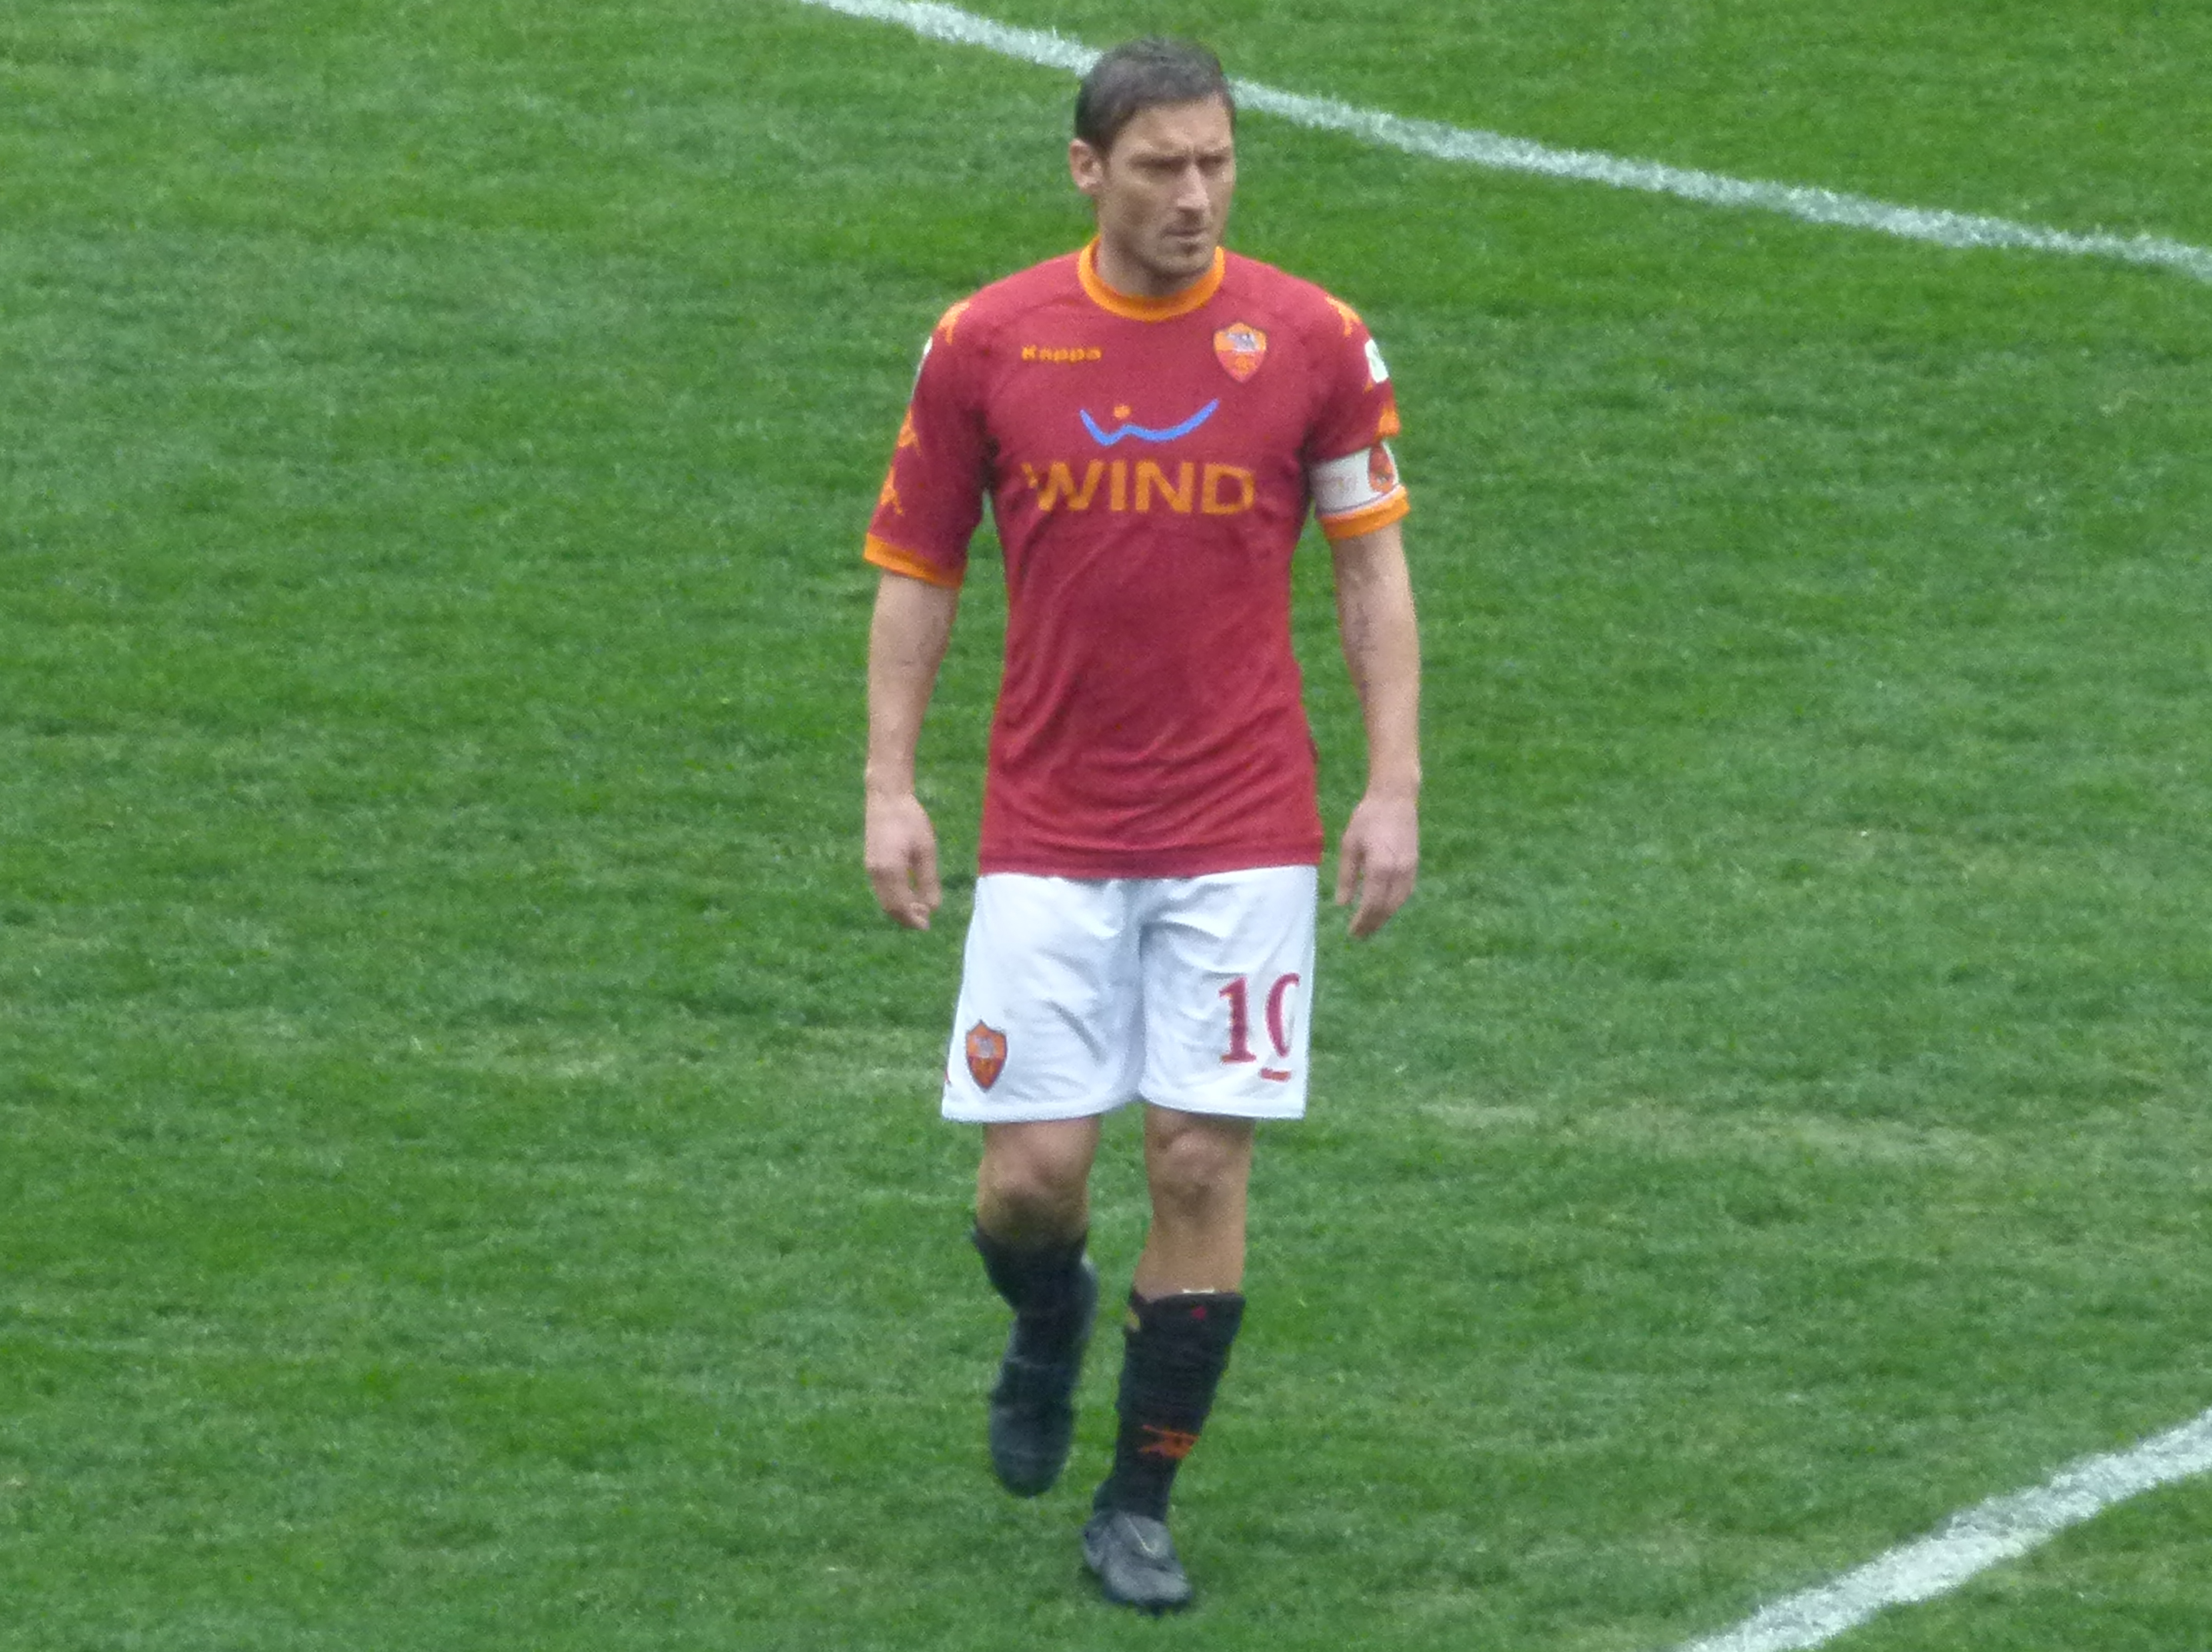 List of A.S. Roma players - Wikipedia